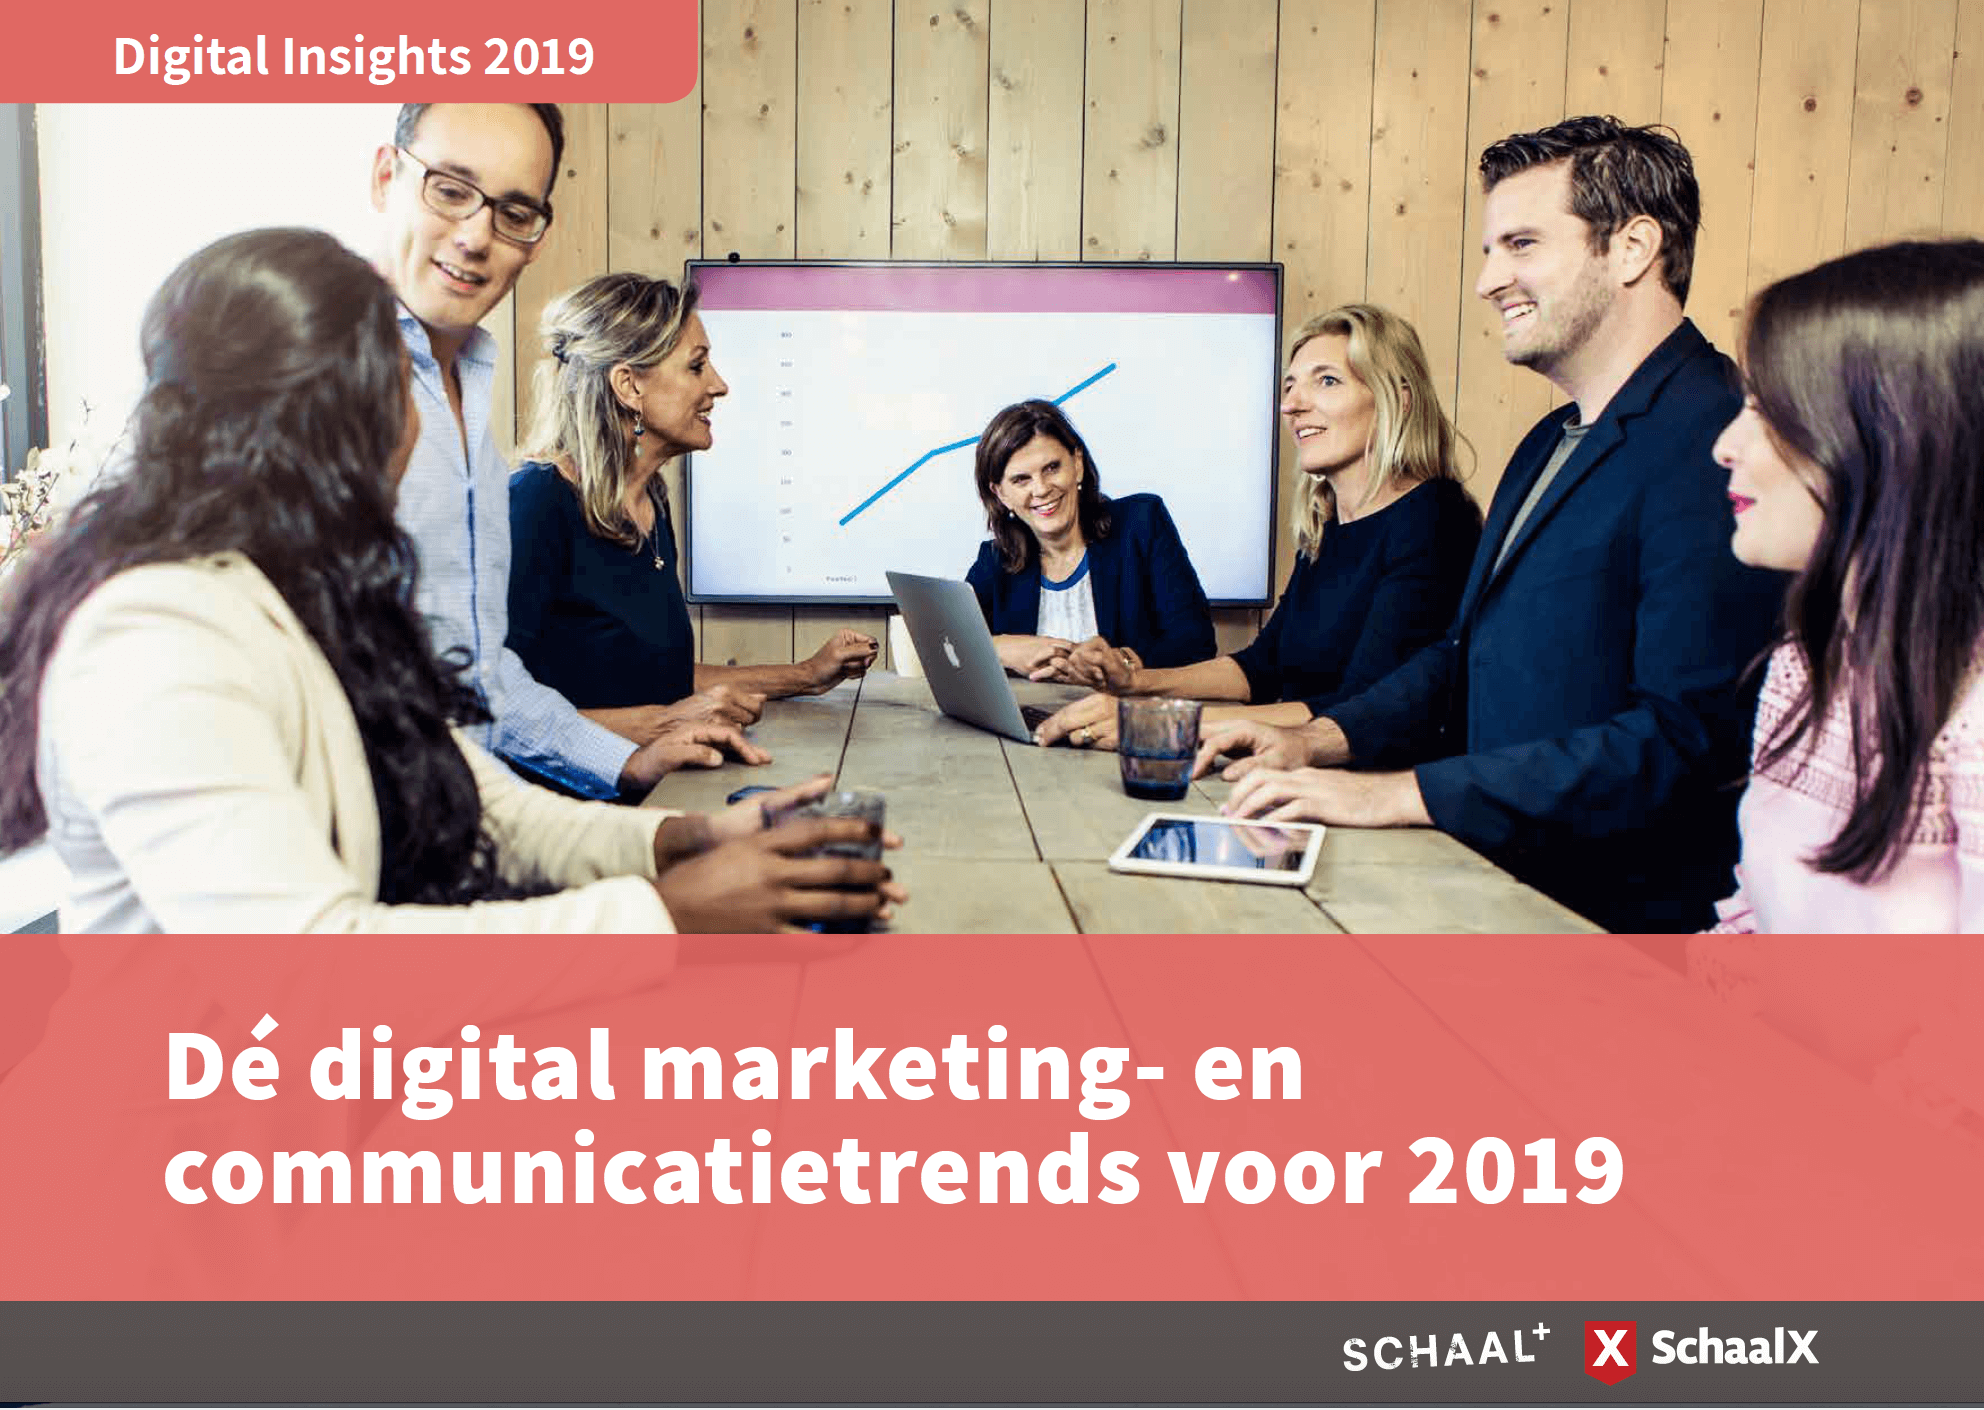 Digital Insights 2019 Schaal+